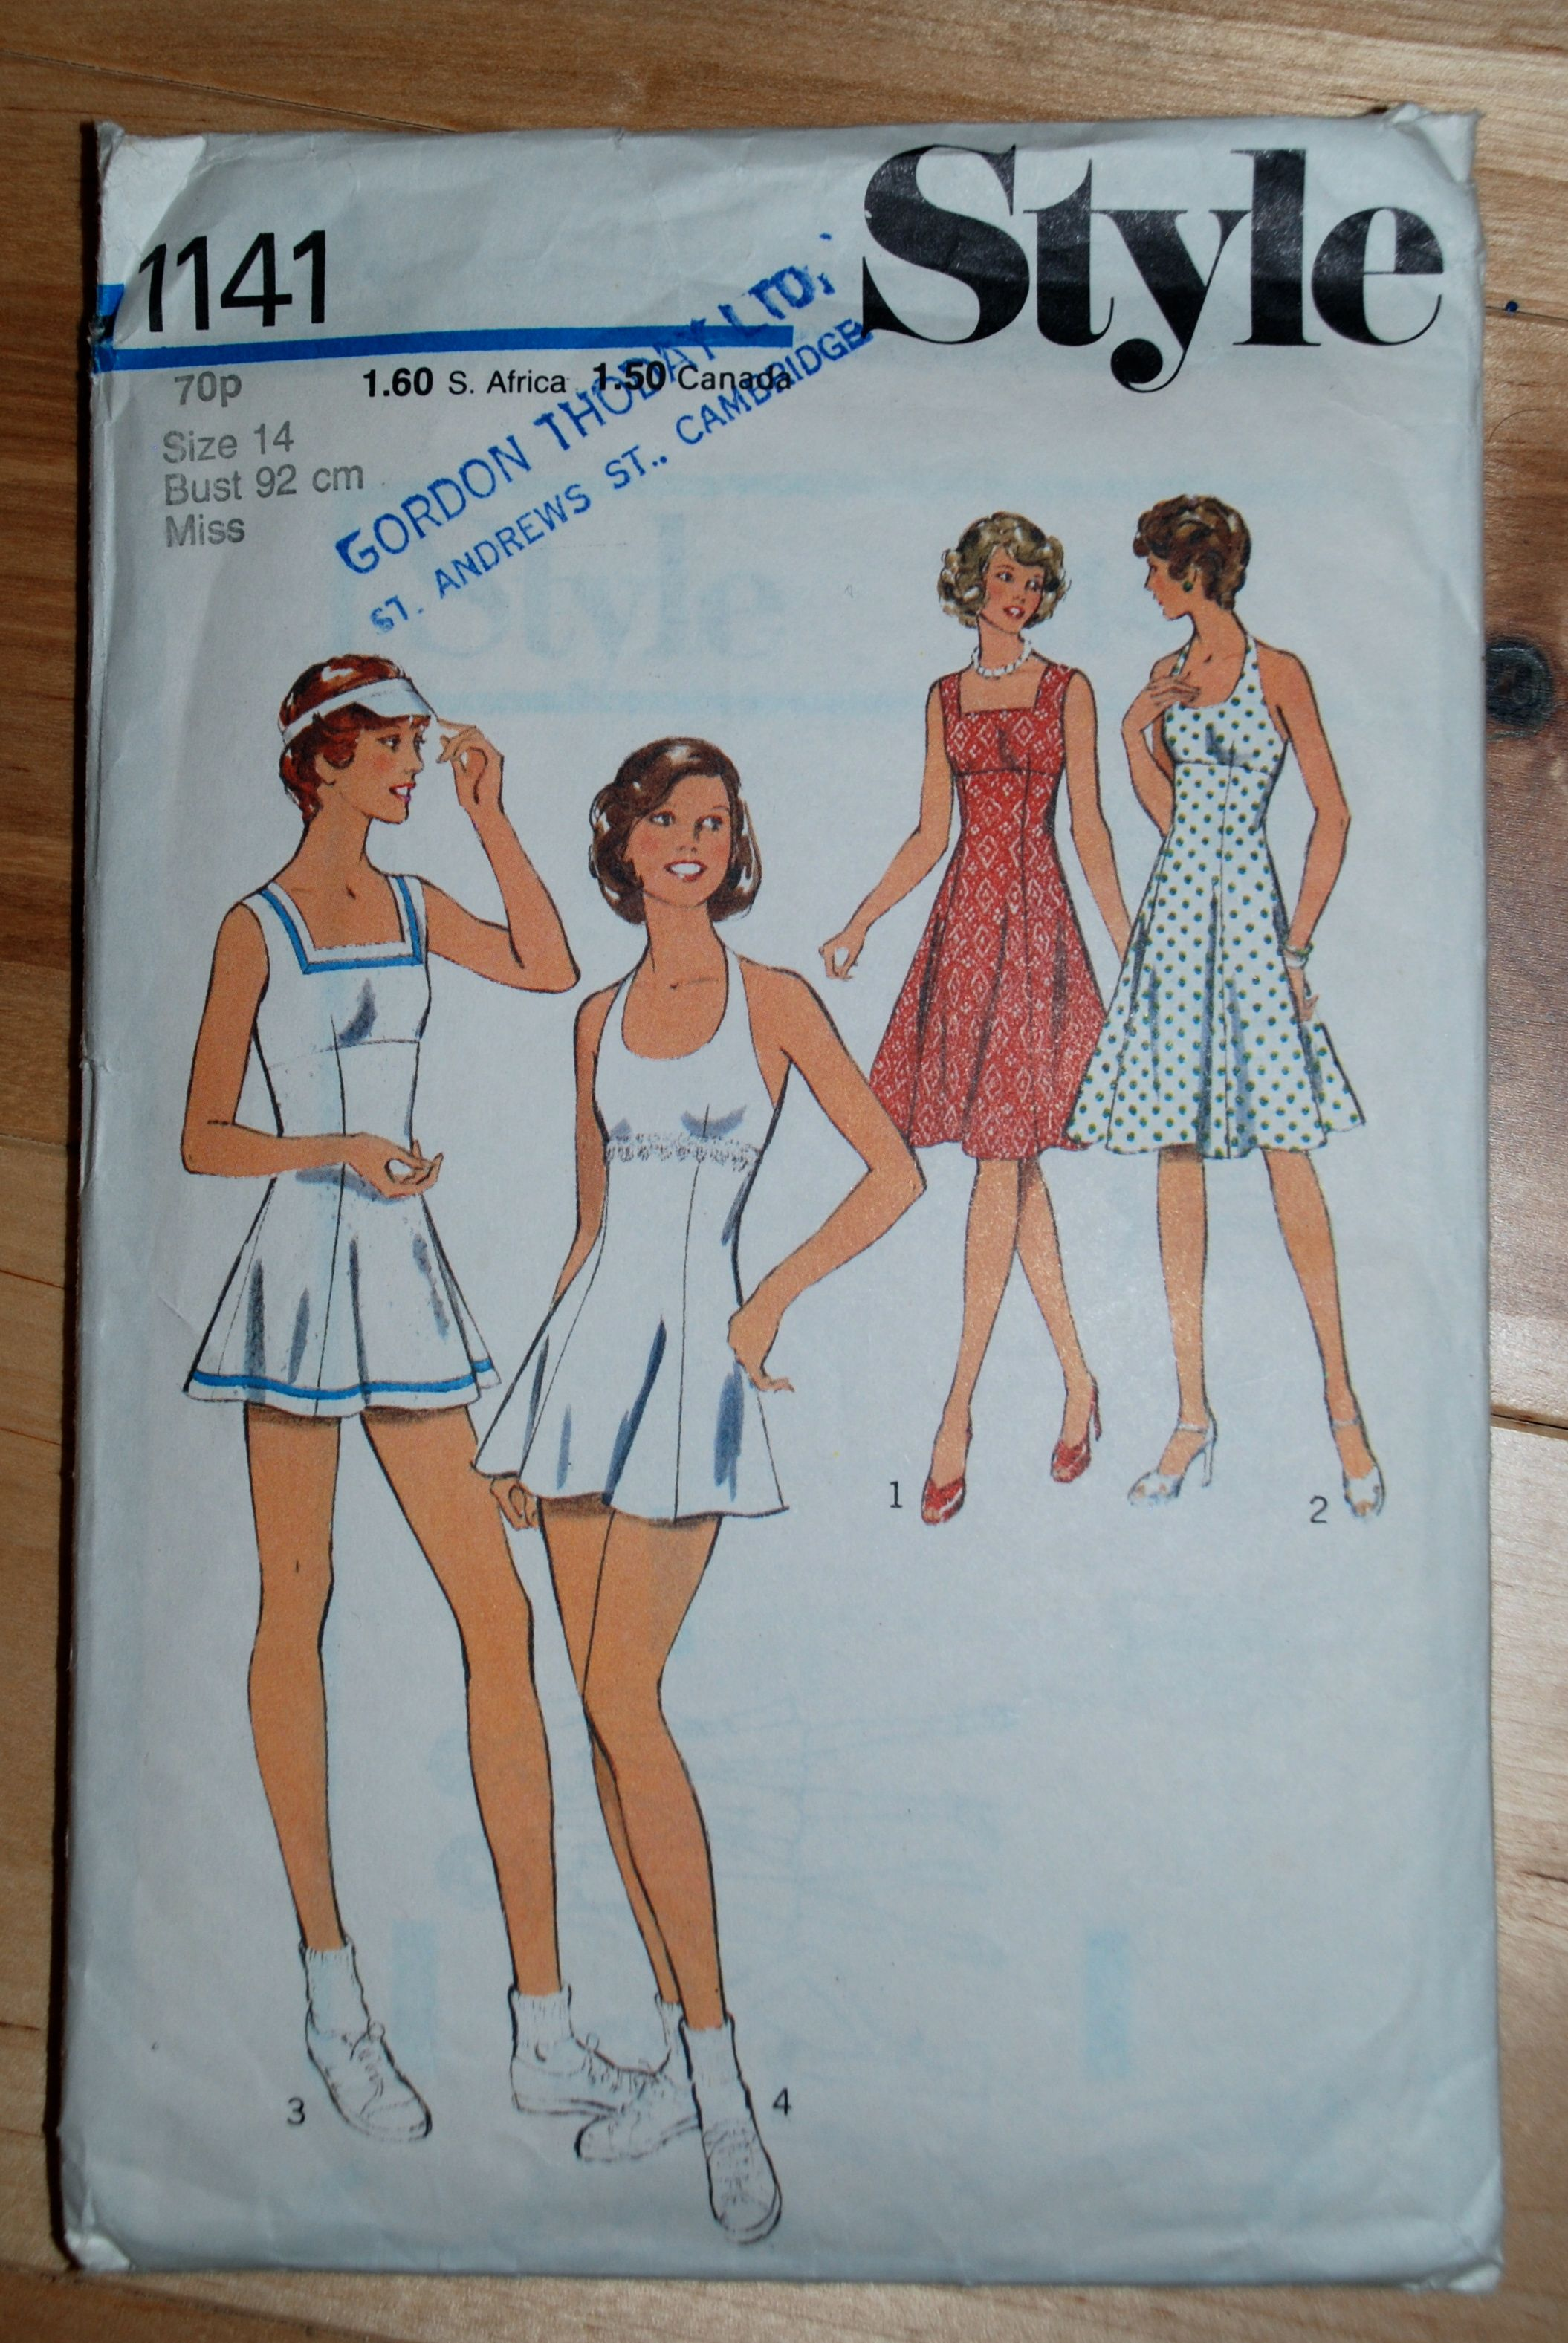 Vintage Tennis Outfit 103